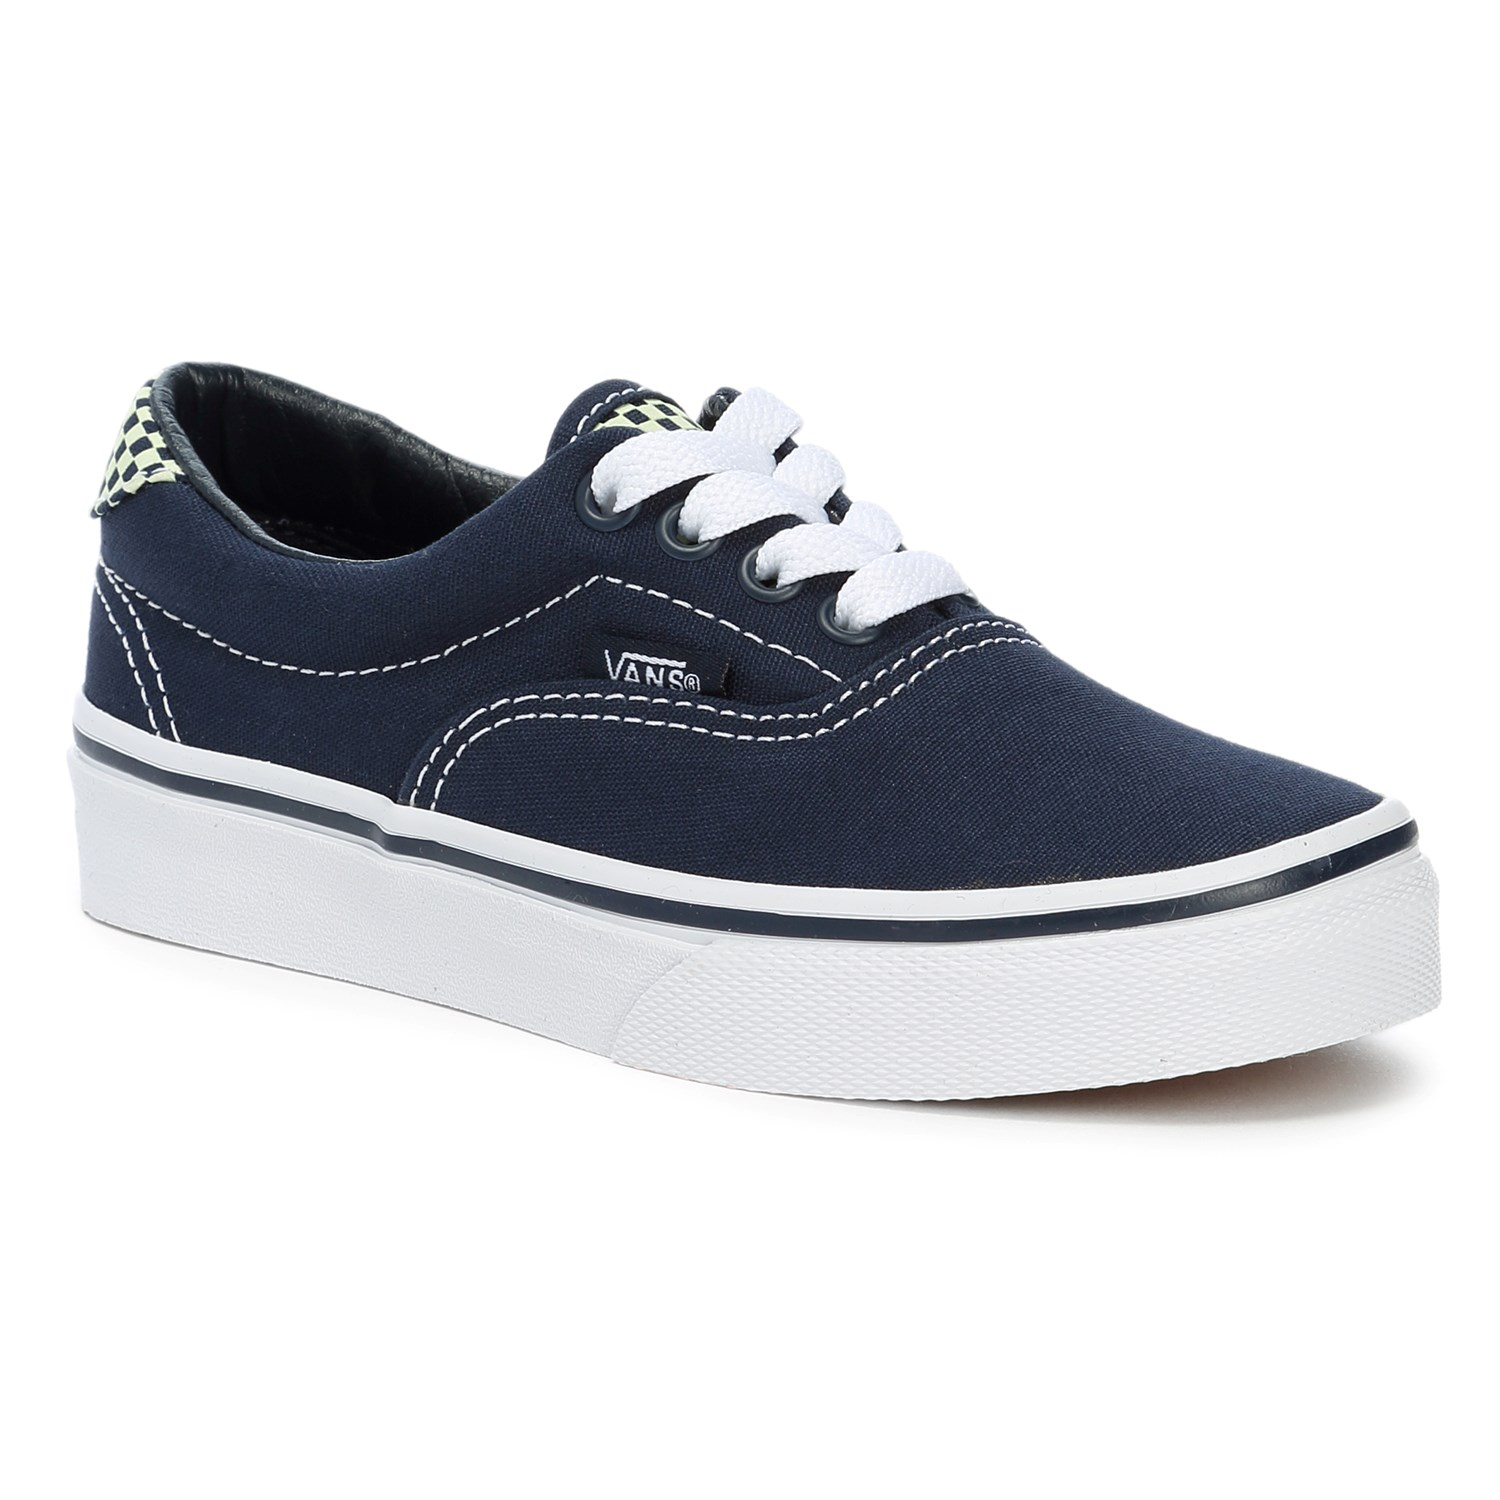 Vans Casual Shoes At Lowest Price